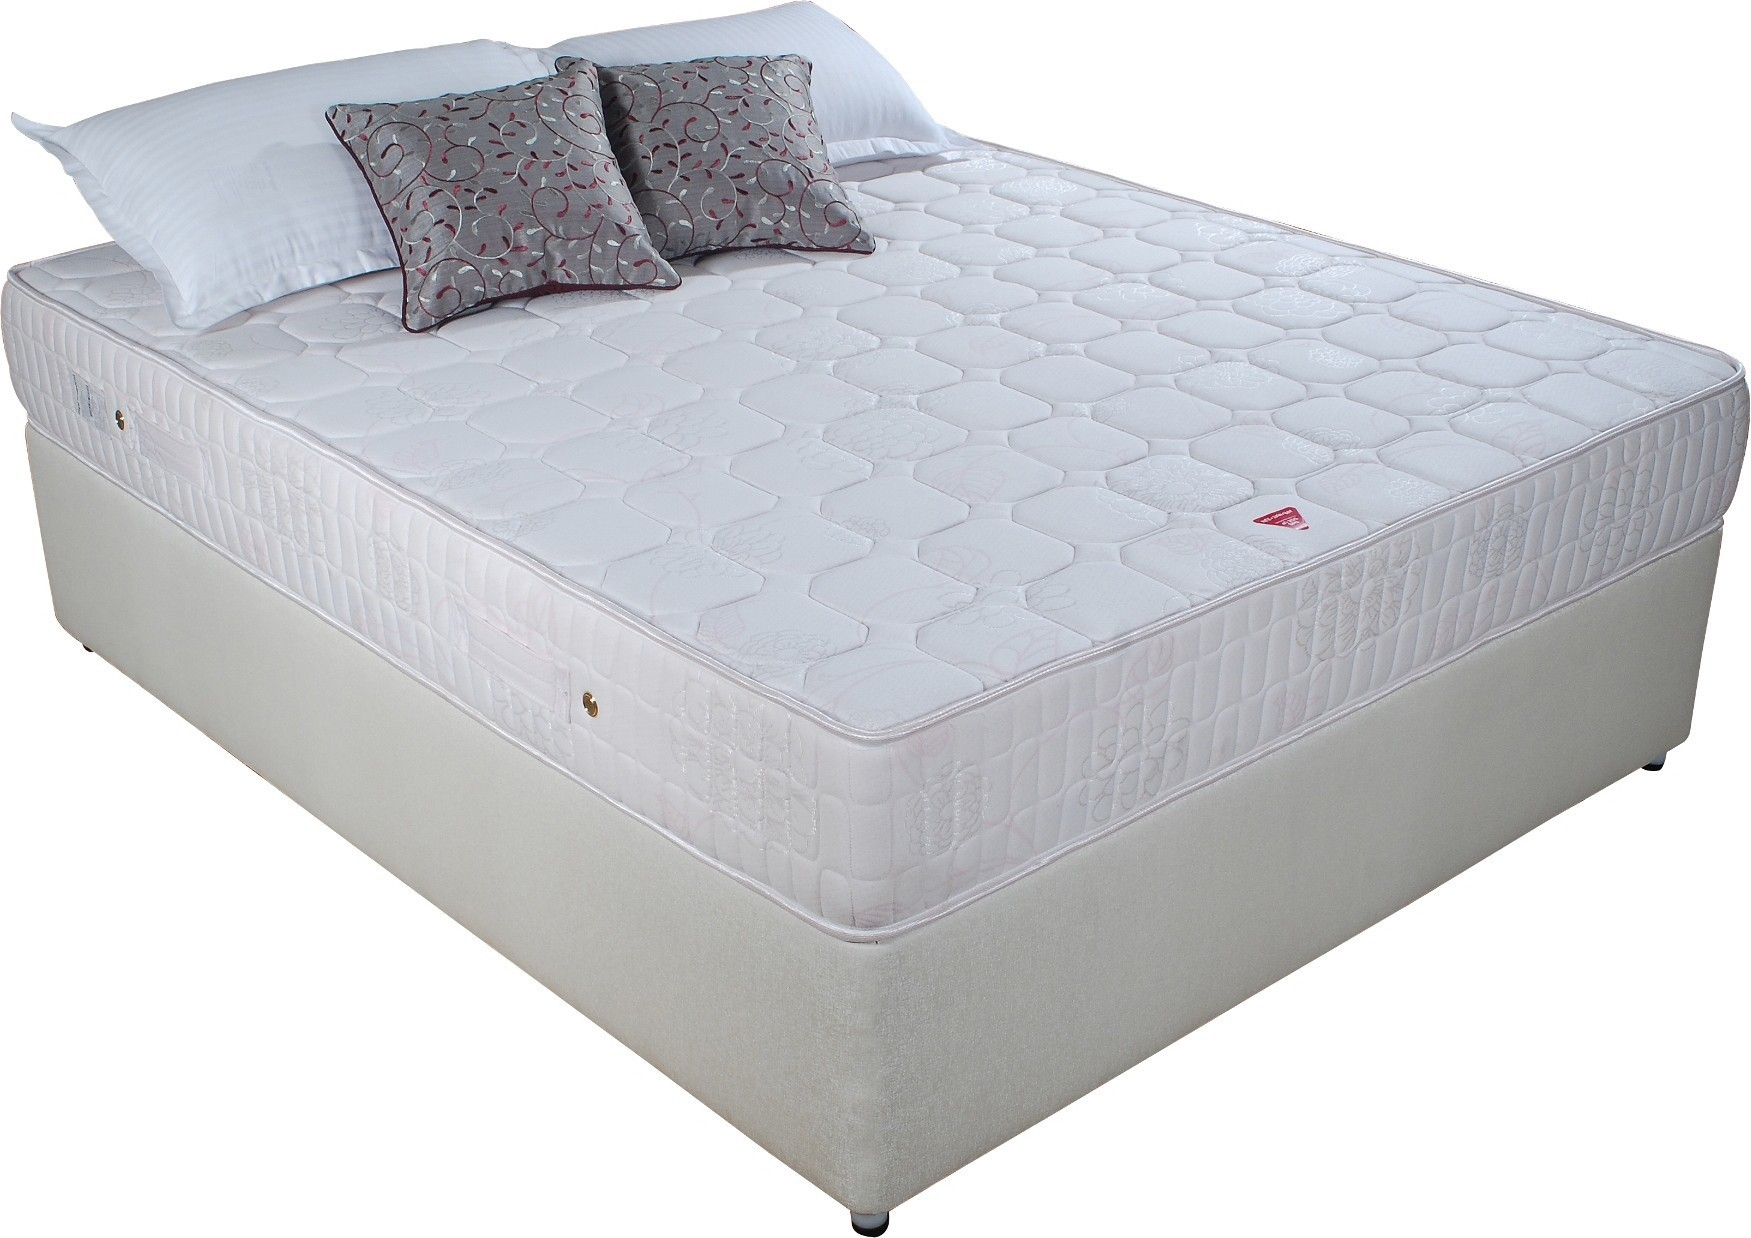 Springwel Softech Series 10 inch King Spring Mattress